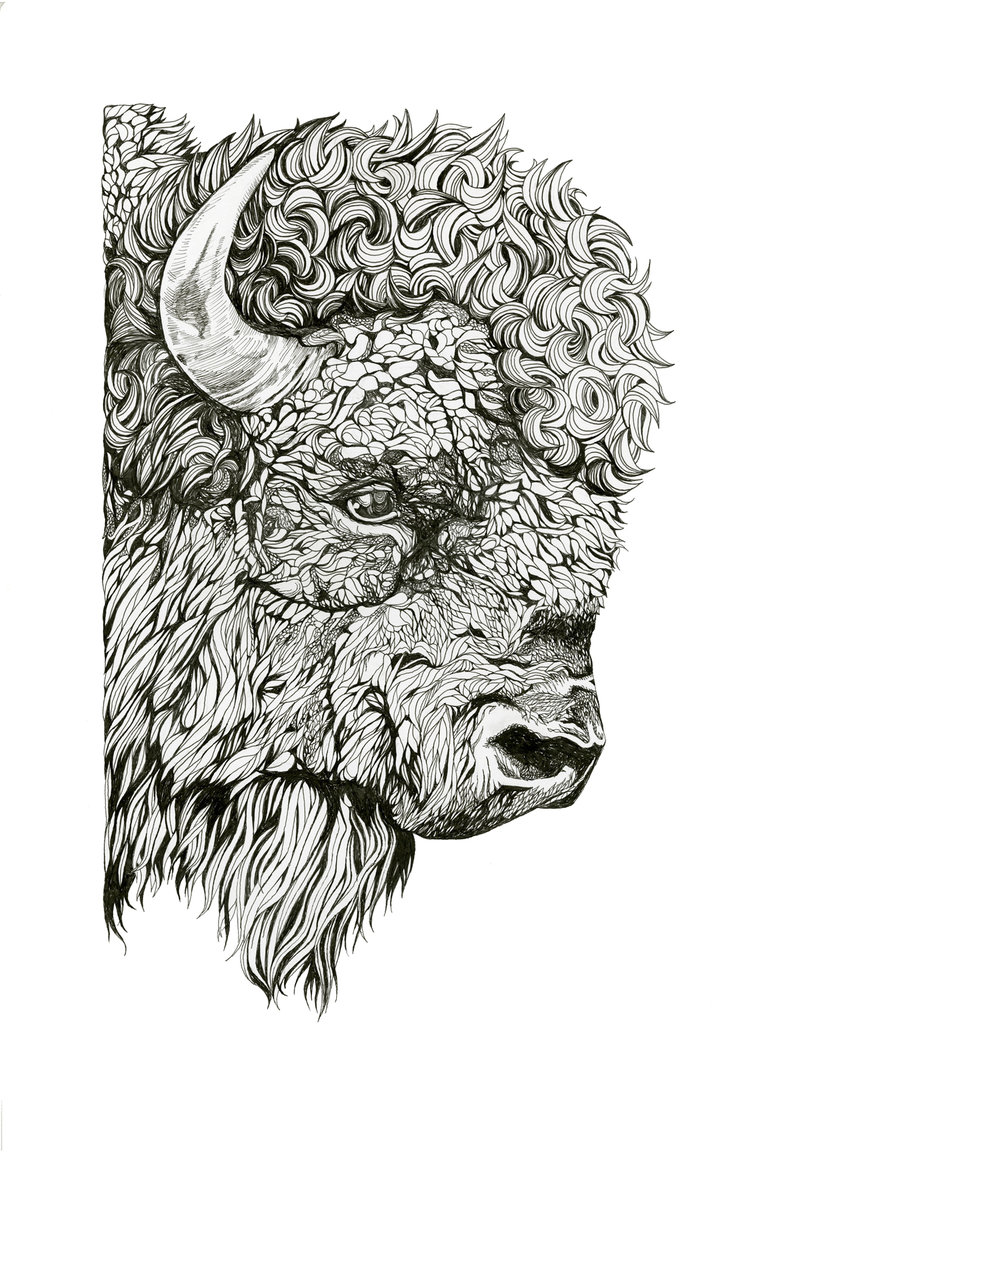 Bison Bison Bison - 19 X 14.5felt-tipped pen on bristol paperprints available on request